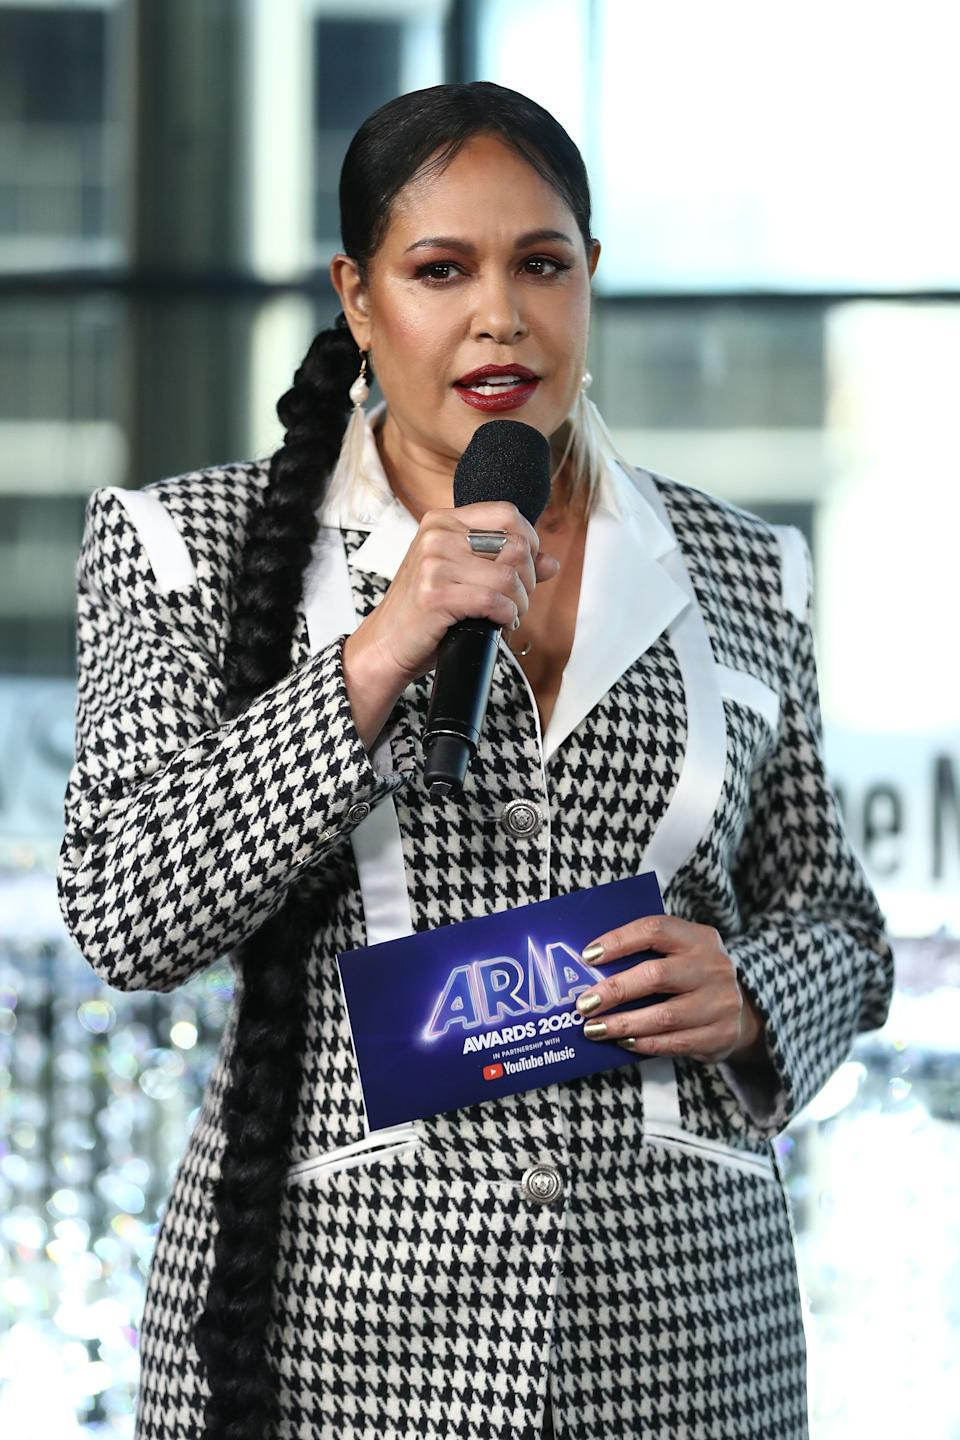 Christine Anu speaks during the Pre-Show ahead of the 2020 ARIA Awards at The Star on November 25, 2020 in Sydney, Australia. (Photo: Brendon Thorne via Getty Images)